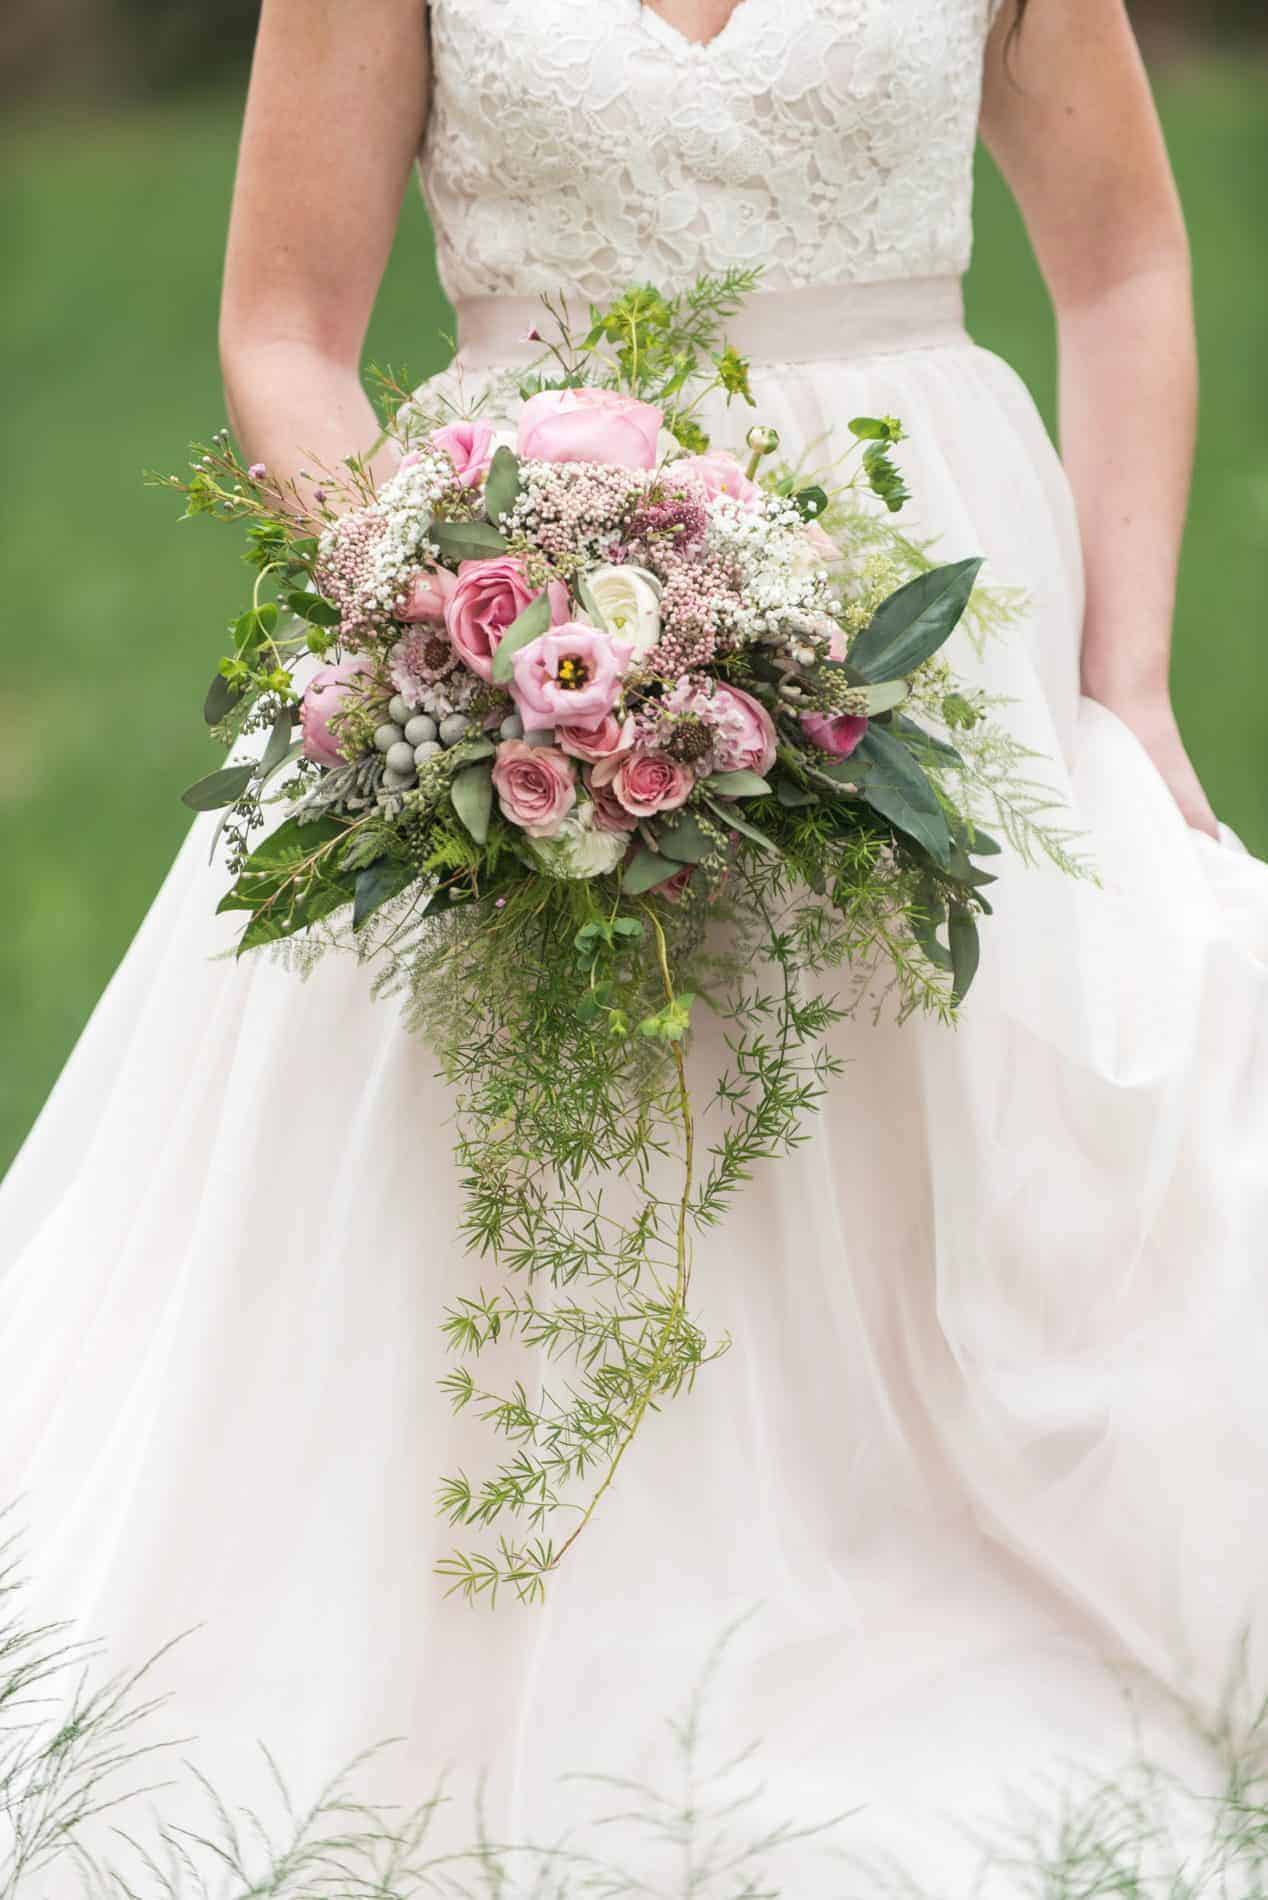 This Bridal Bouquet from The Flower Studio is Gorgeous